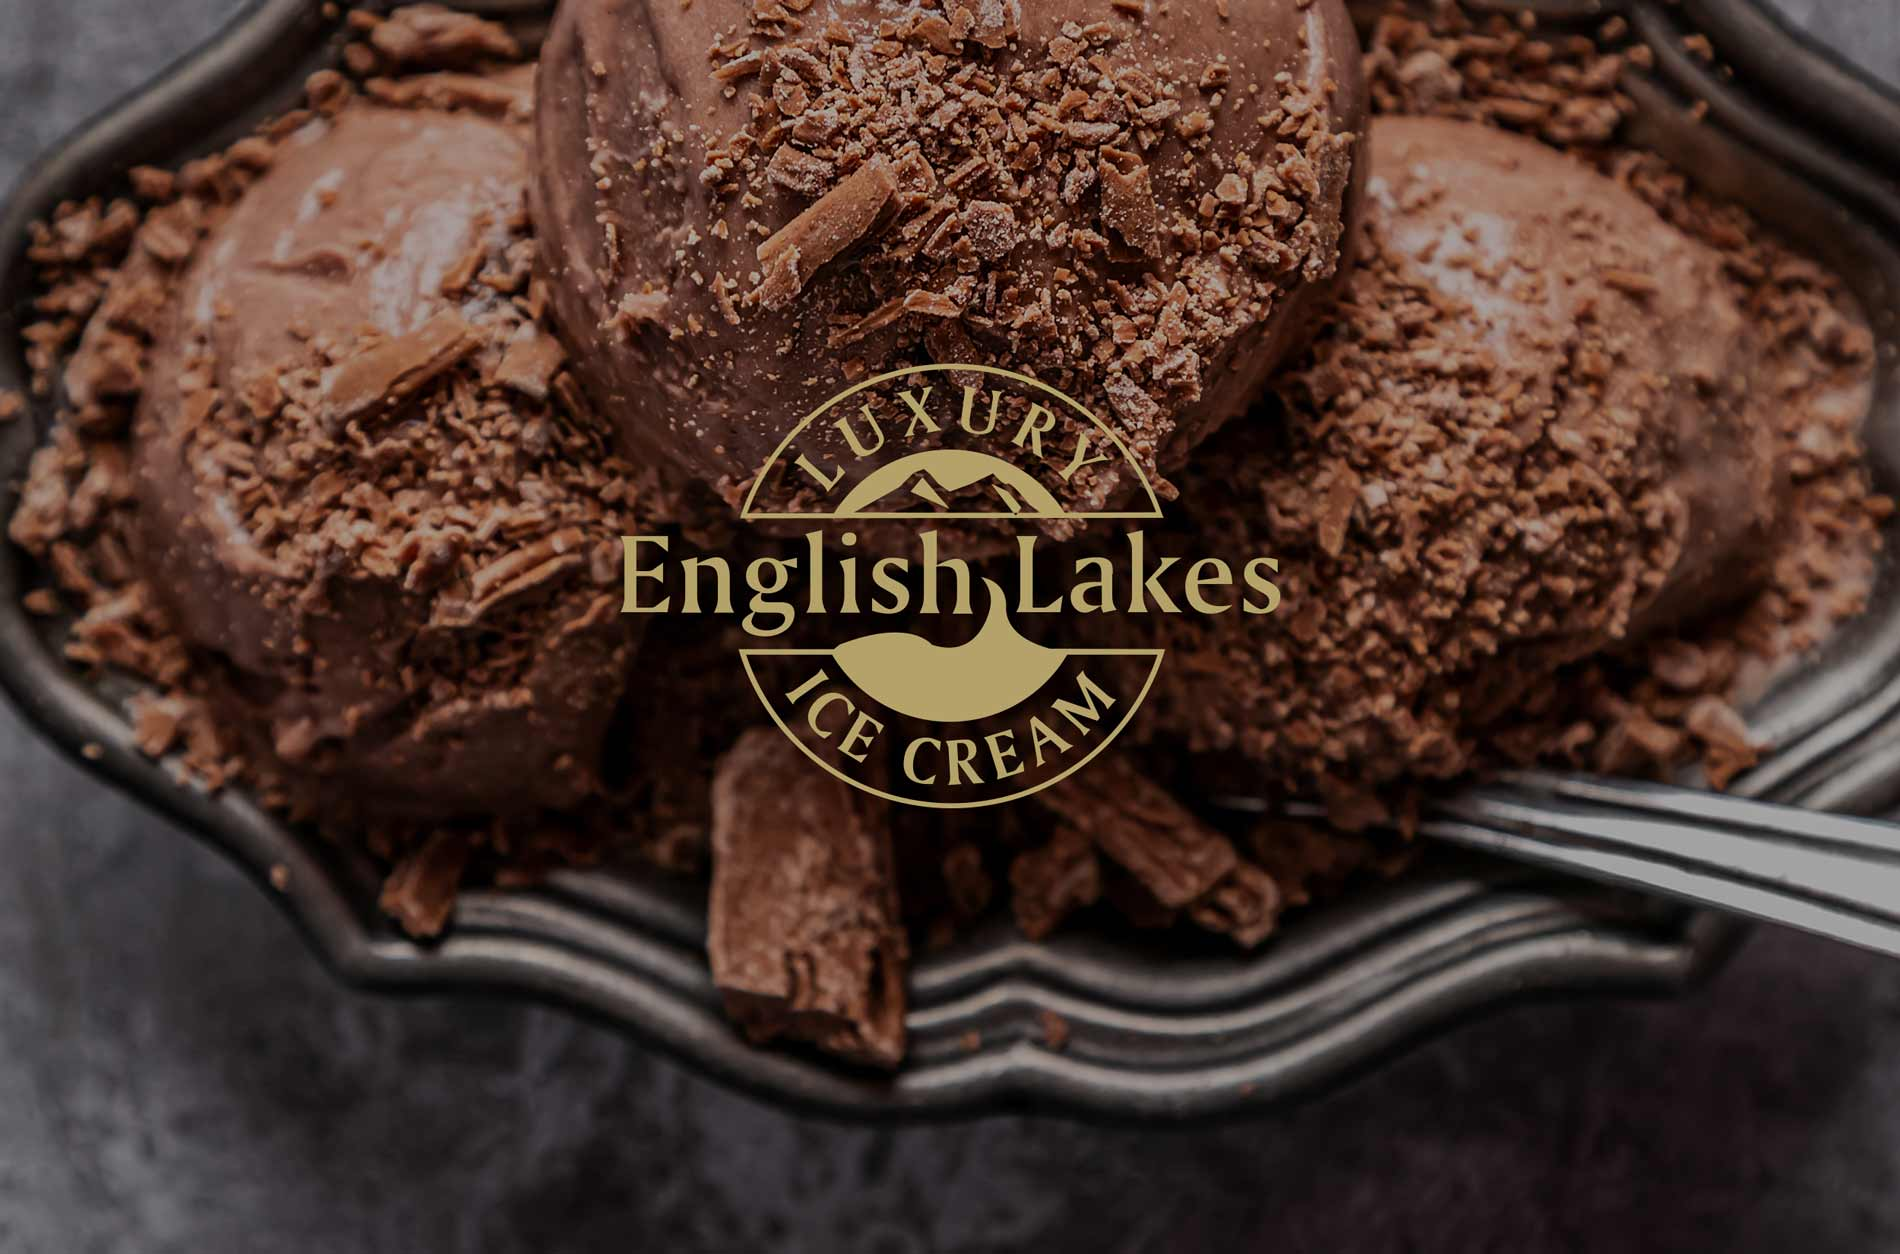 English Lakes Ice Cream Packaging Design